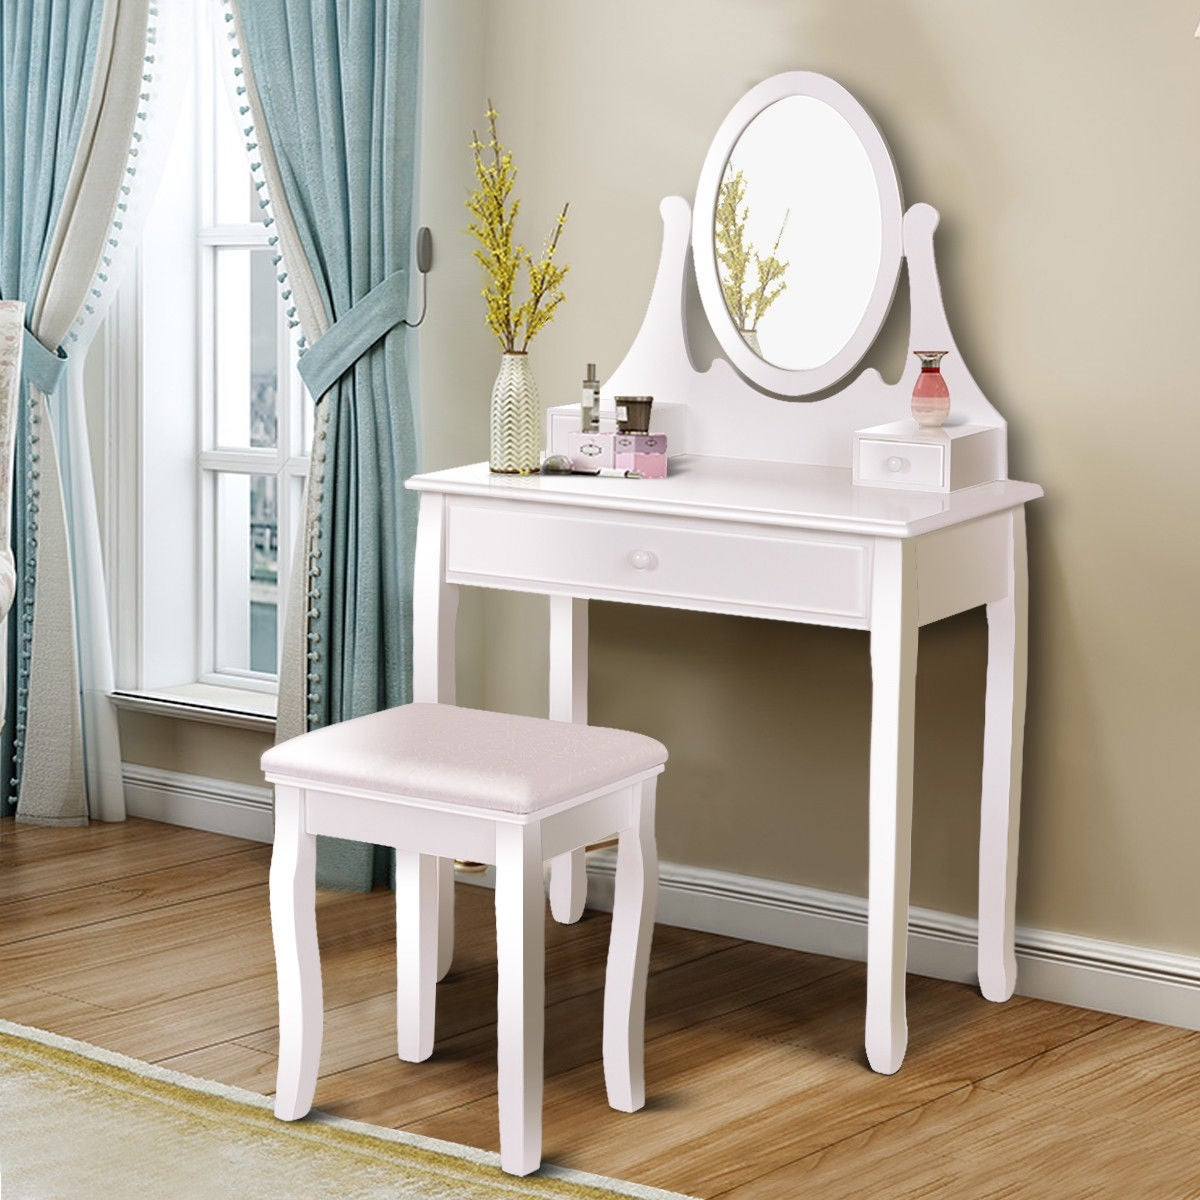 Image of: Shop Black Friday Deals On Gymax Bedroom Wooden Mirrored Makeup Vanity Set Stool Table Set White On Sale Overstock 22971641